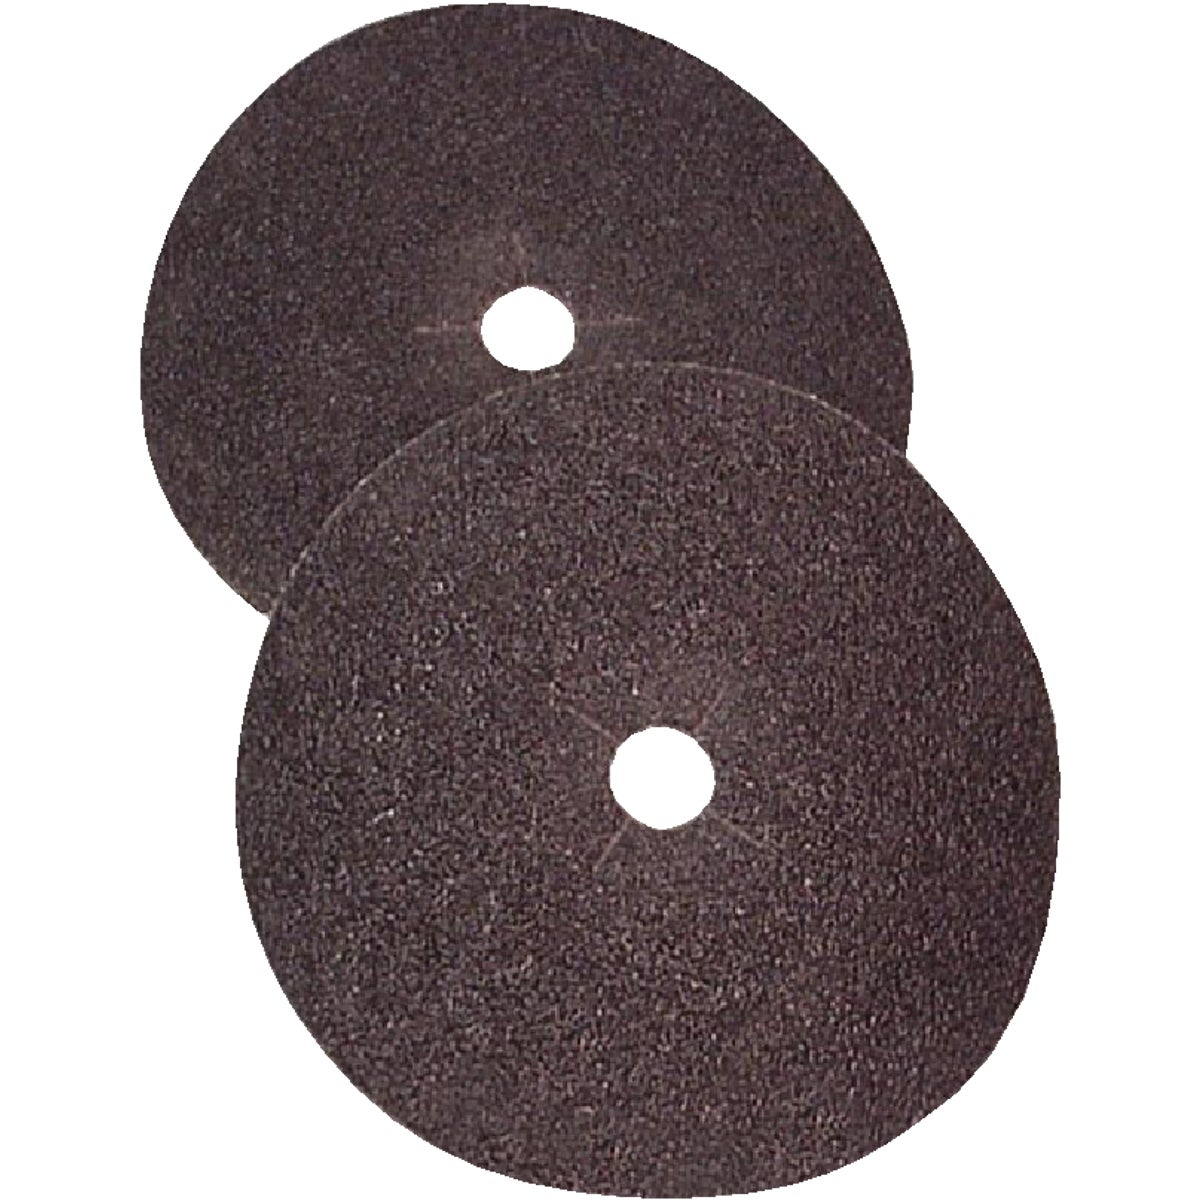 "7"" 24G FLR SANDING DISC - 006-870824 by Virginia Abrasives"